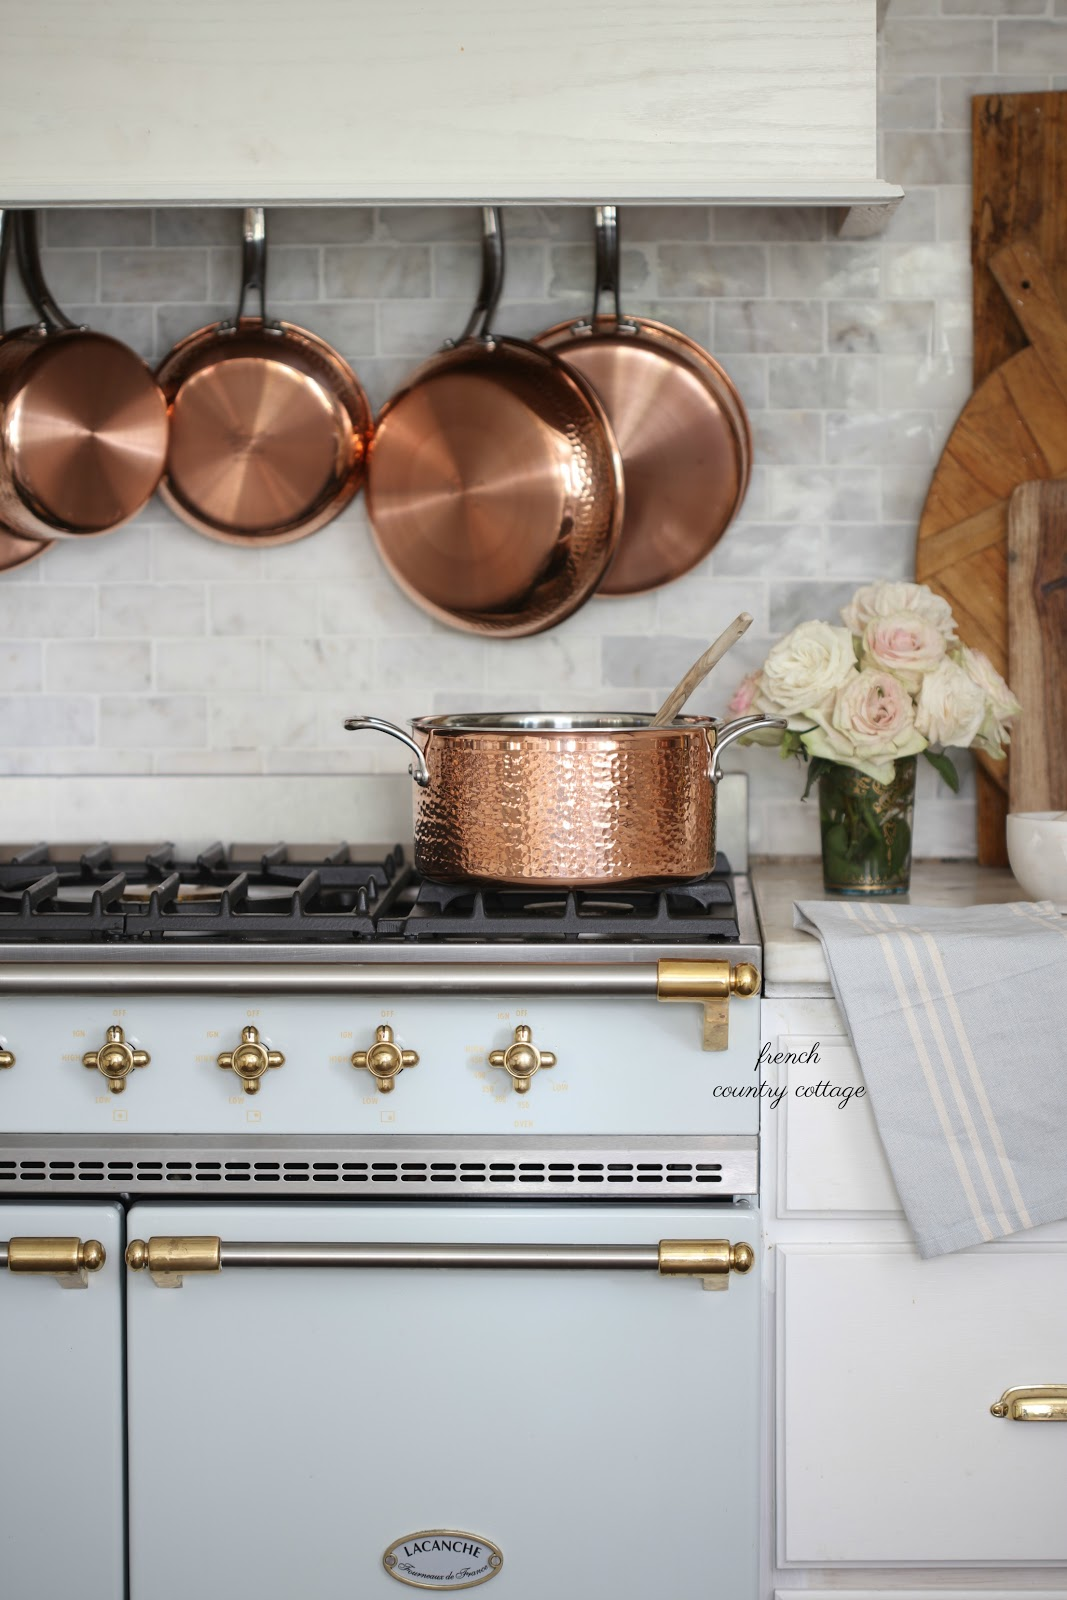 French pots copper pan made in France cooking pots cooking pan country kitchen pots and pans farmhouse, country pan French country